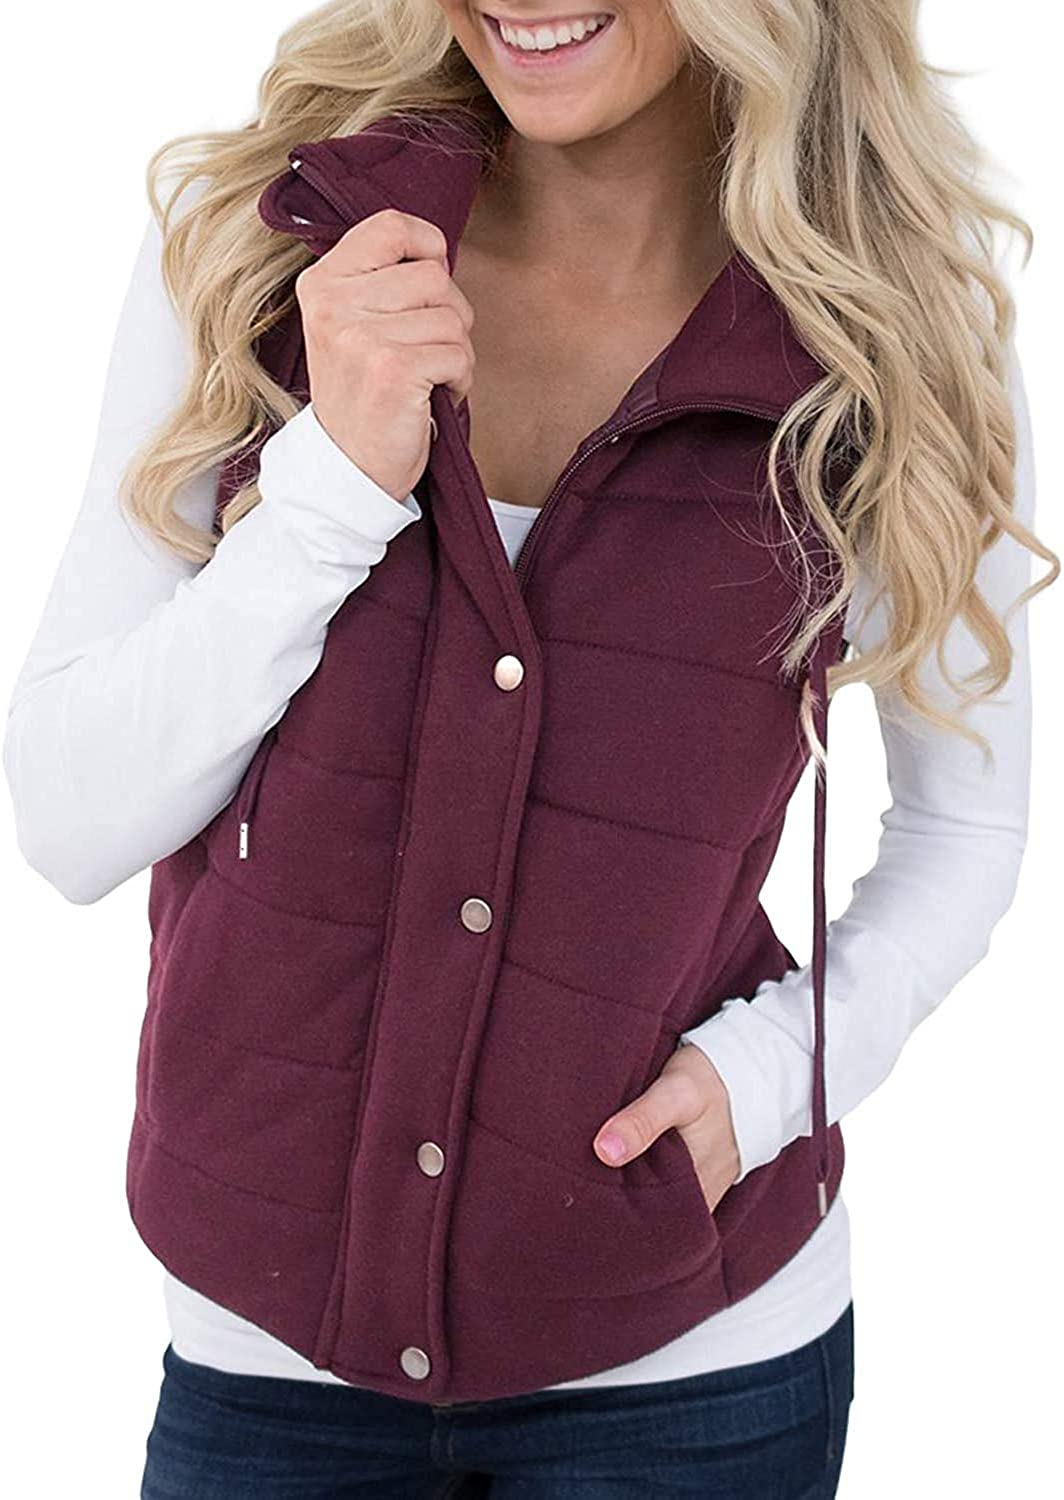 Women's Lightweight Quilted Zip,Snaps Up Puffer Vest Drawstring Jacket Gilet with Pockets Padded Outerwear